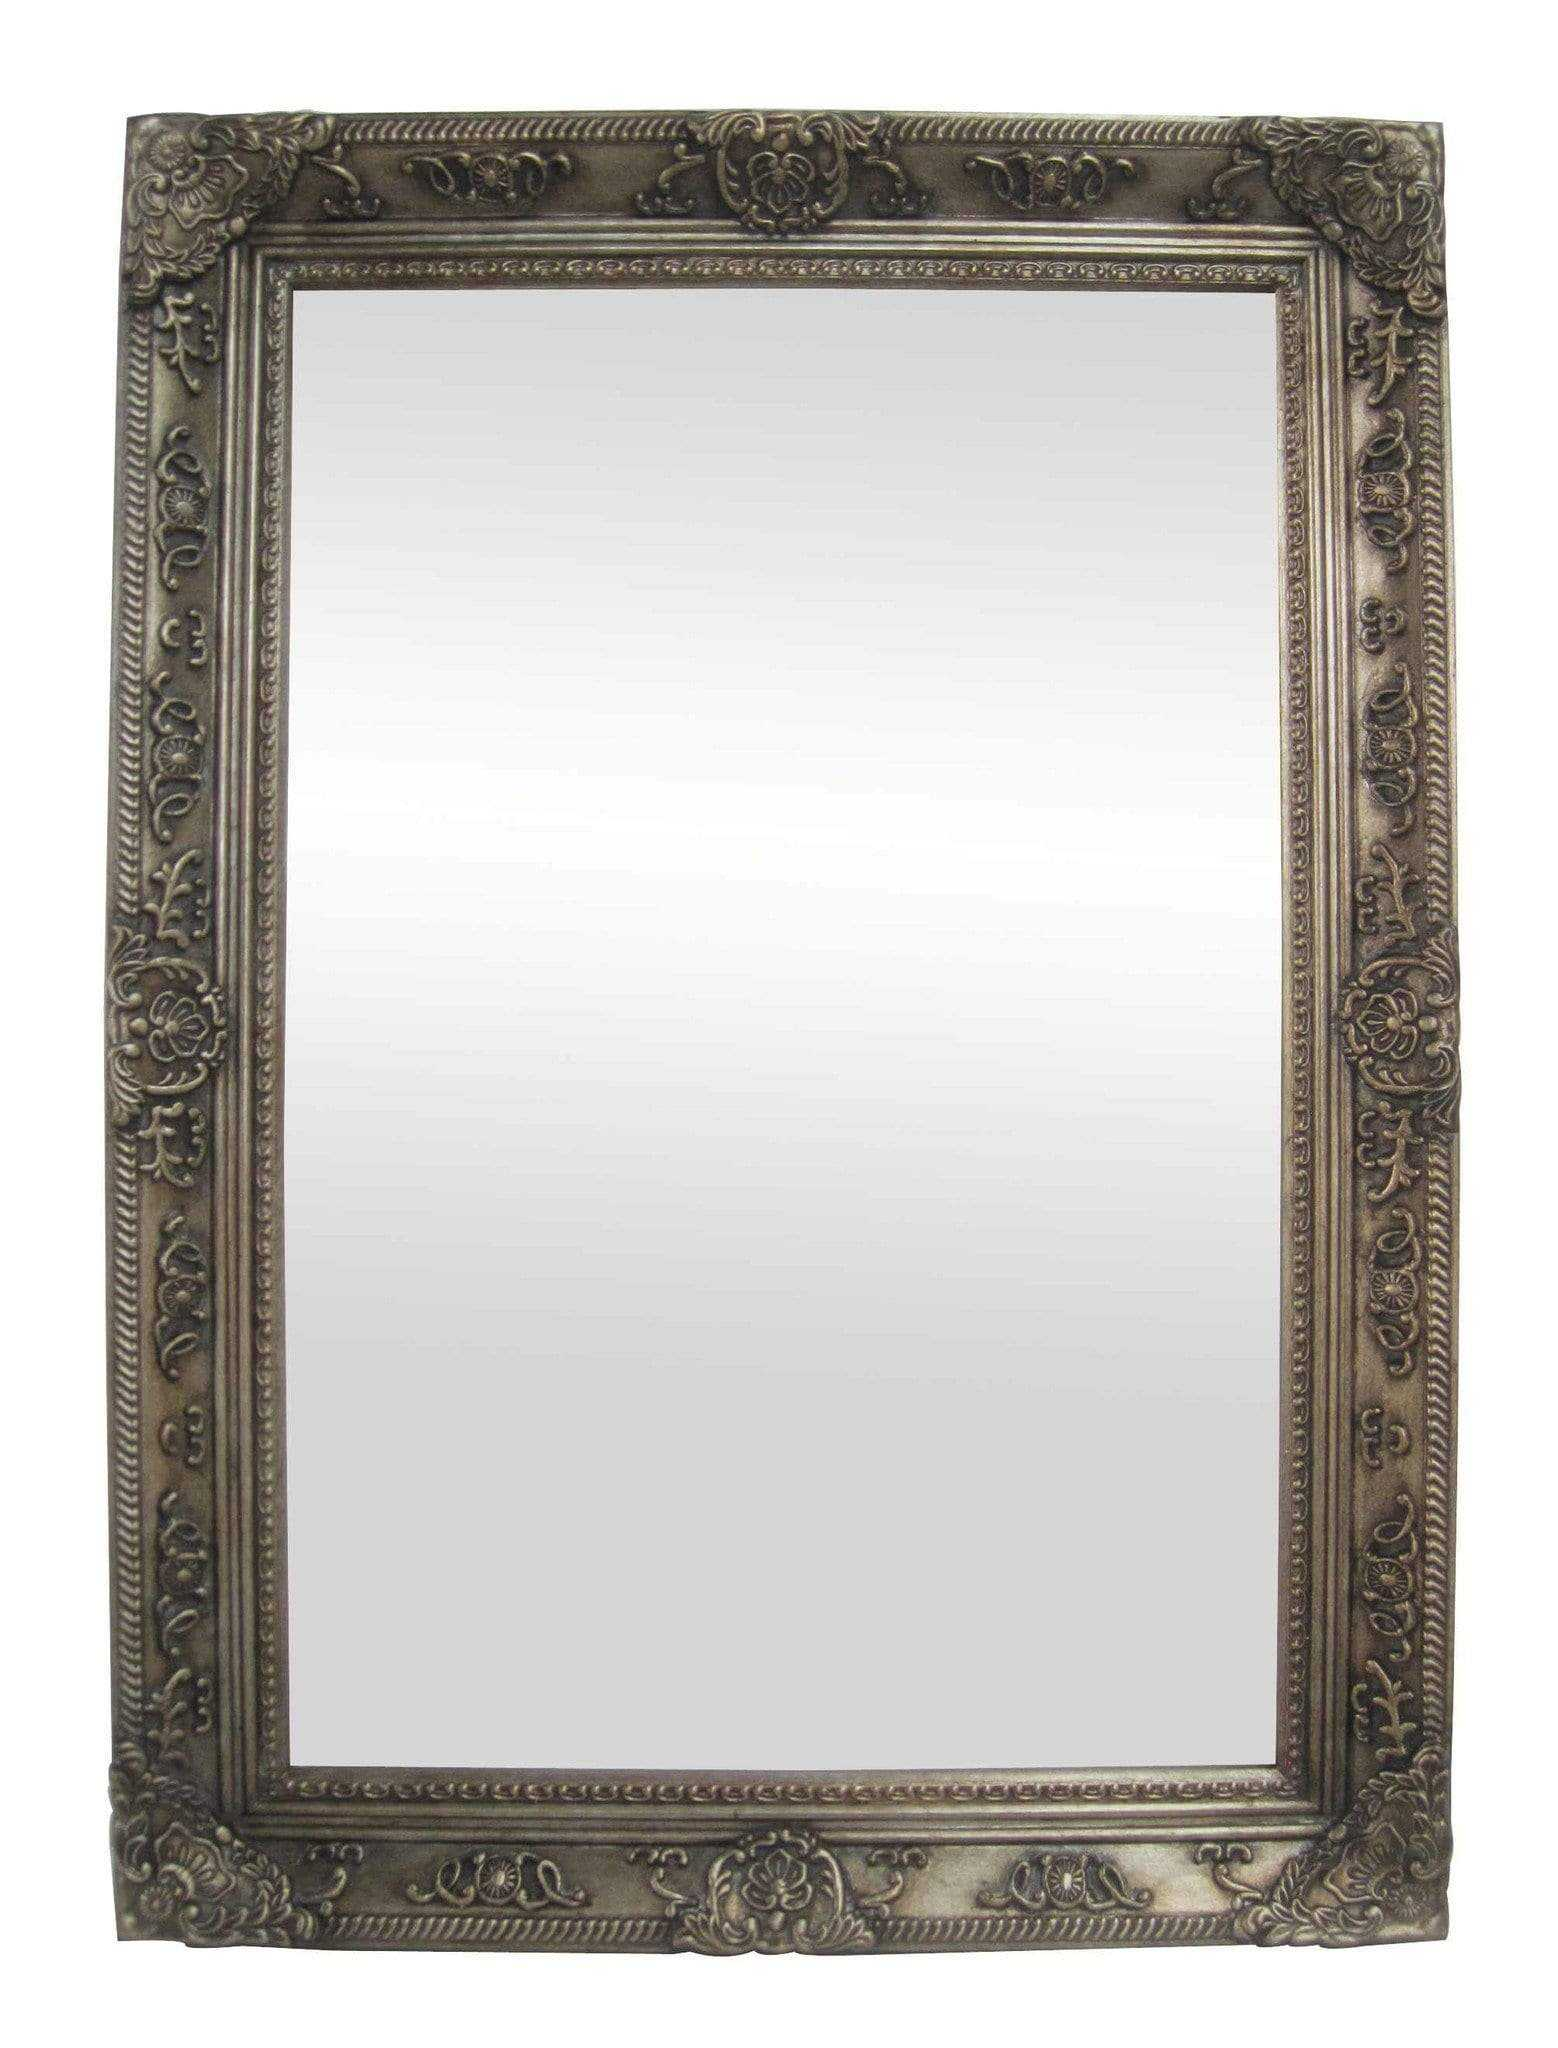 Bathroom mirrors sydney - Cornelia French Provincial Ornate Mirror 80 X 110 Cm